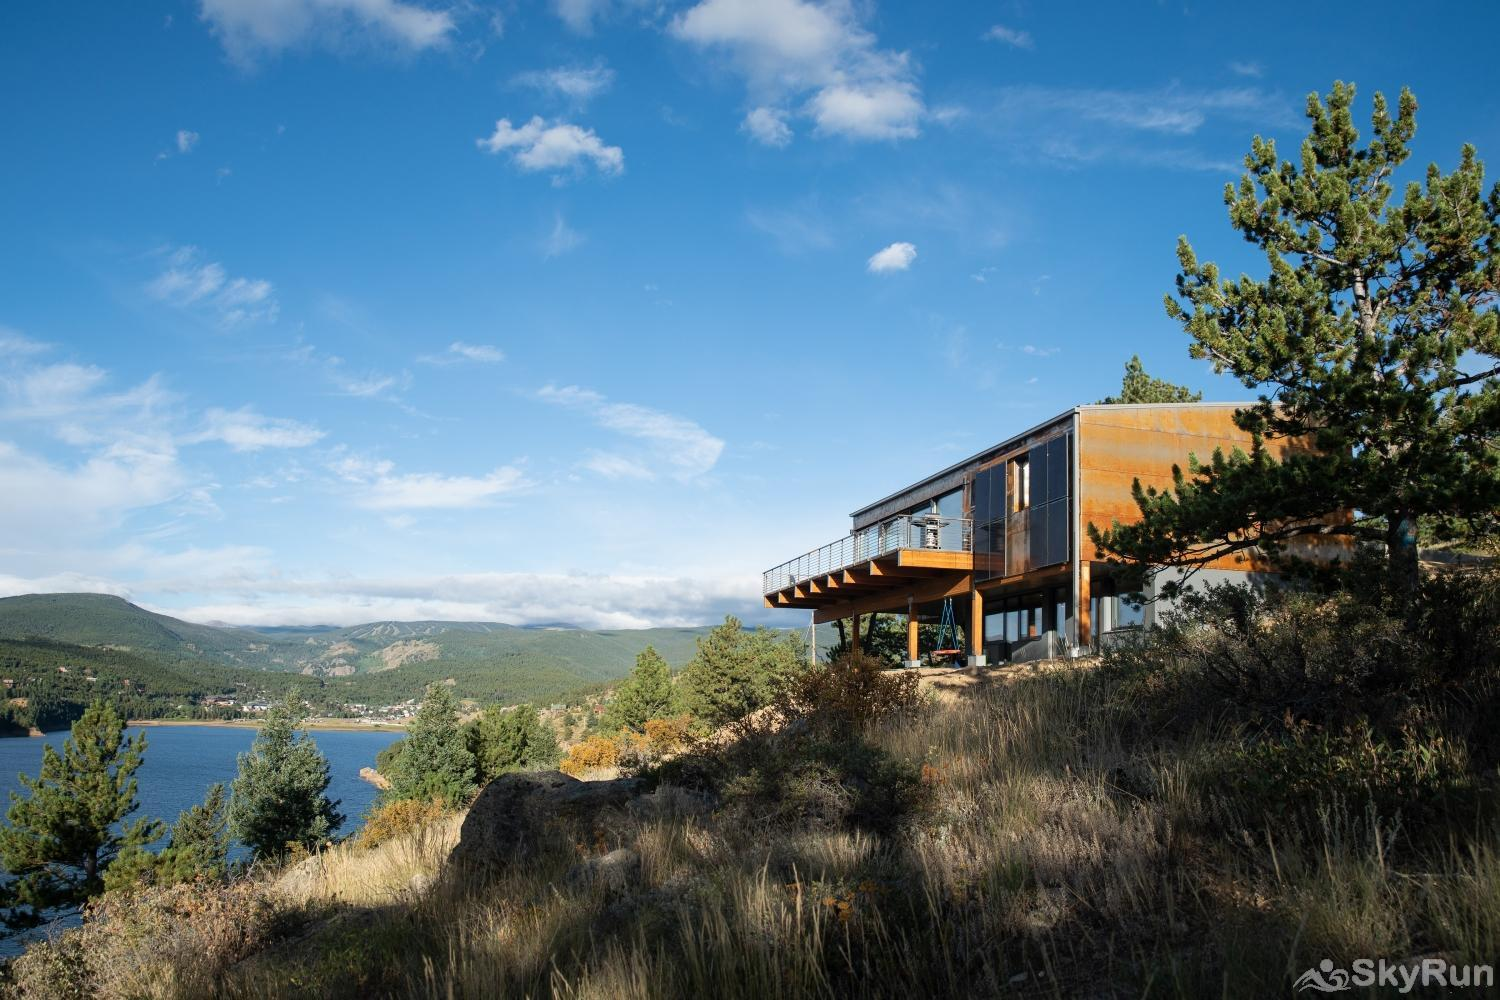 Timberline Haus Stunning home and setting!